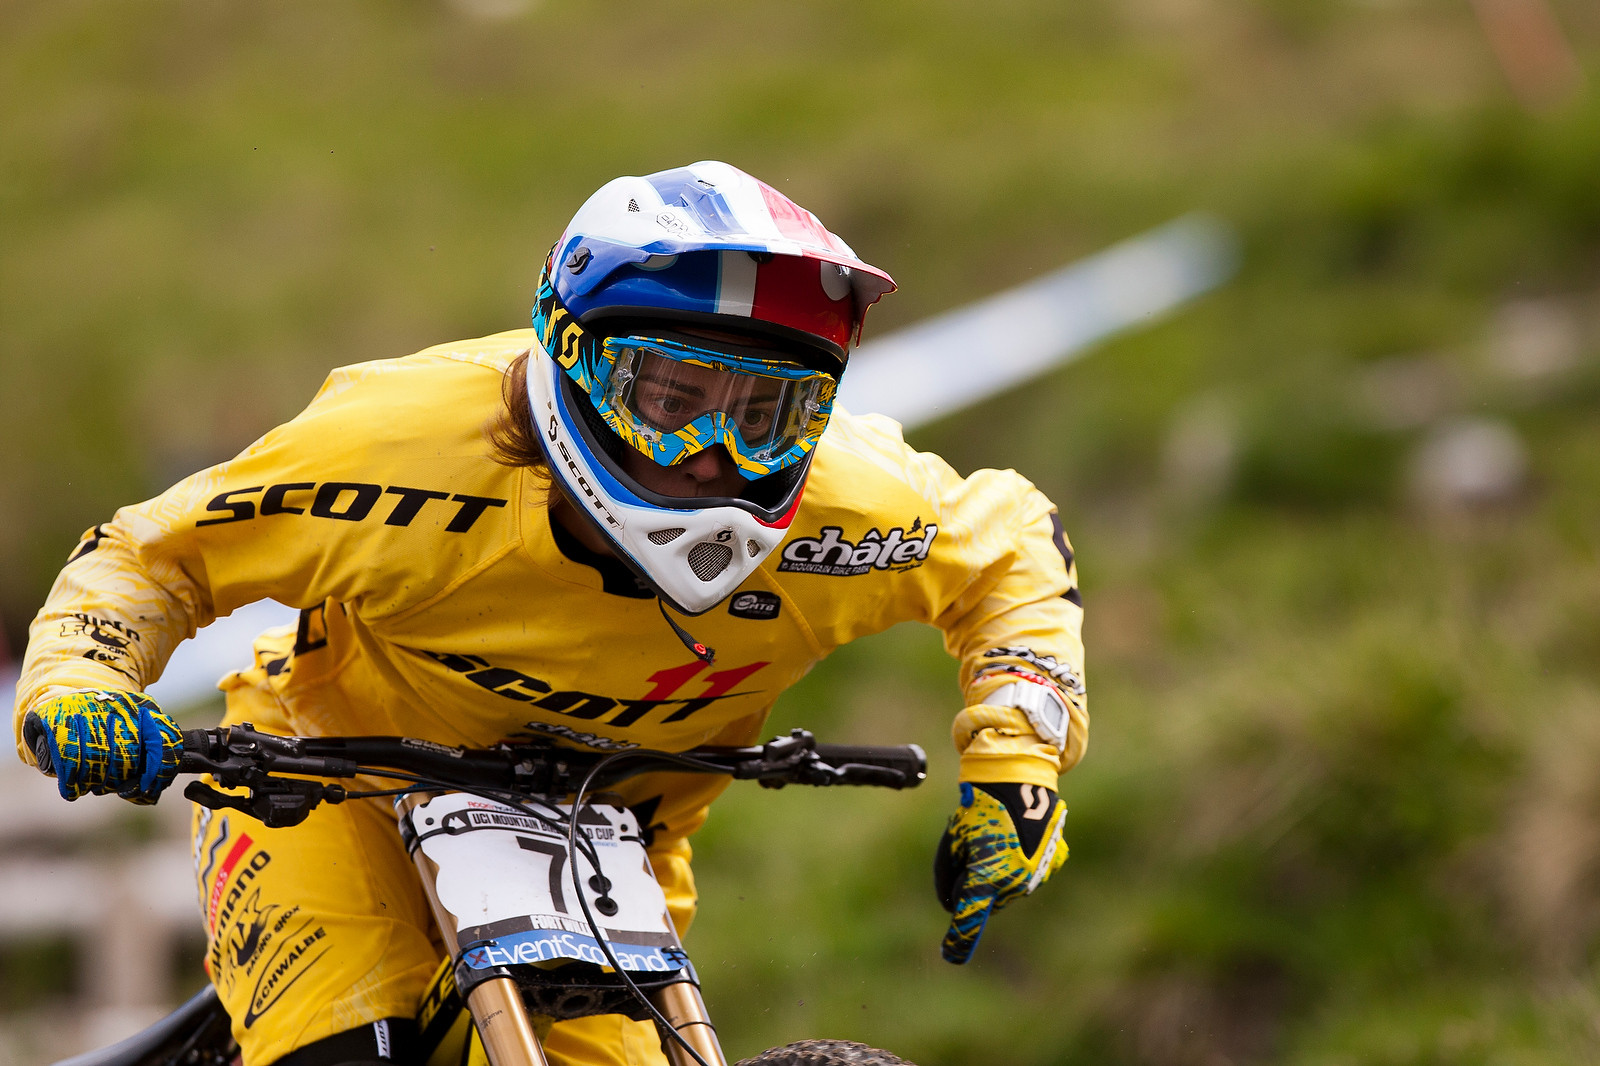 Floriane Pugin at Fort William - 2012 UCI World Cup, Fort WIlliam Scotland, Day 2 - Mountain Biking Pictures - Vital MTB